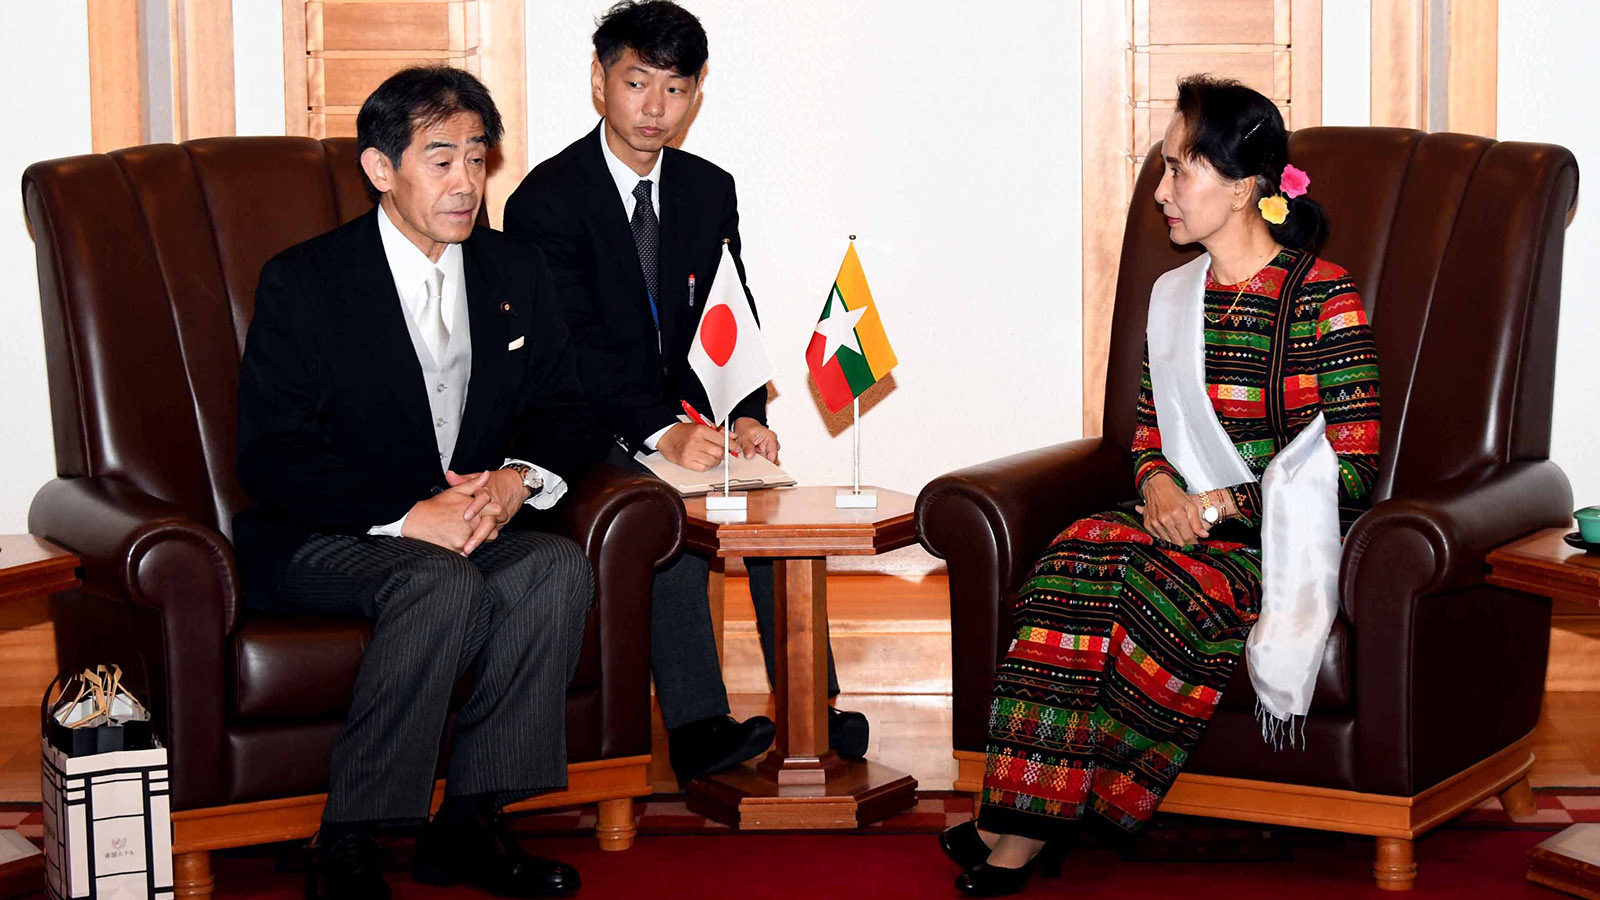 State Counsellor Daw Aung San Suu Kyi meets with Mr Ichiro Aisawa, the Chairman of Japan-Myanmar Parliamentary Friendship Association, at the Imperial Hotel in Tokyo. Photo: MNA